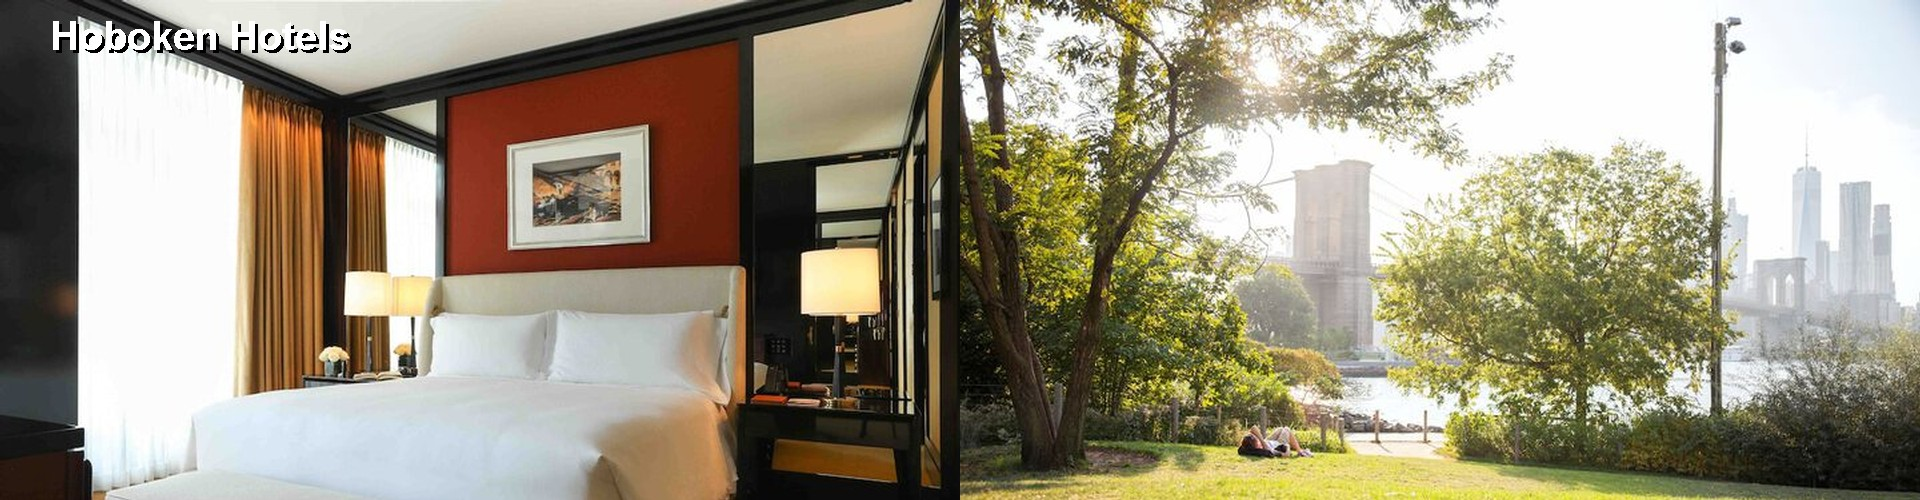 4 Best Hotels near Hoboken